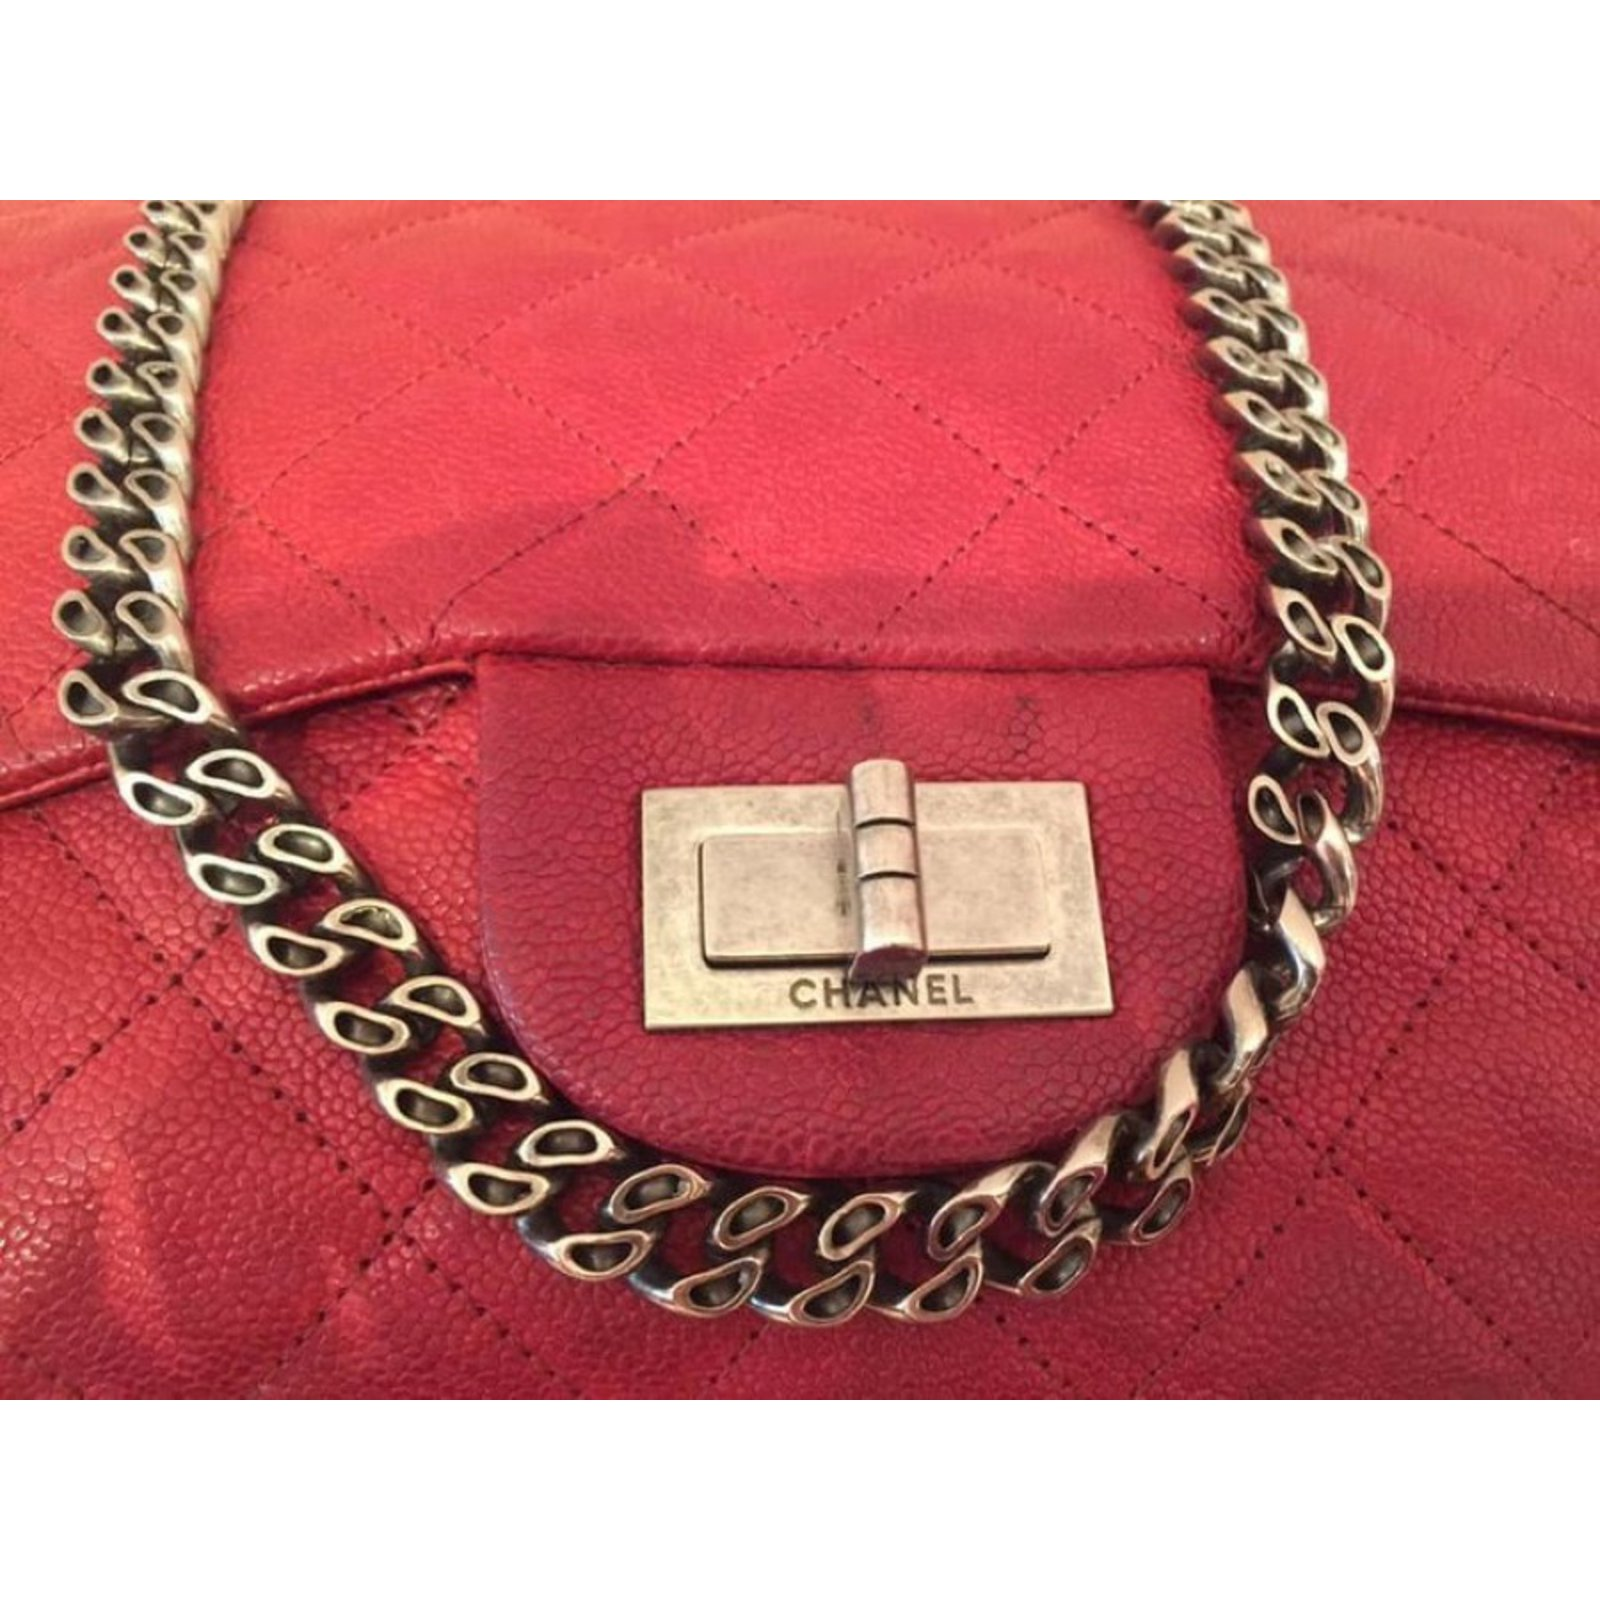 0c9279413a97 Facebook · Pin This. Chanel 2.55 Bag Handbags Leather Other ref.84298